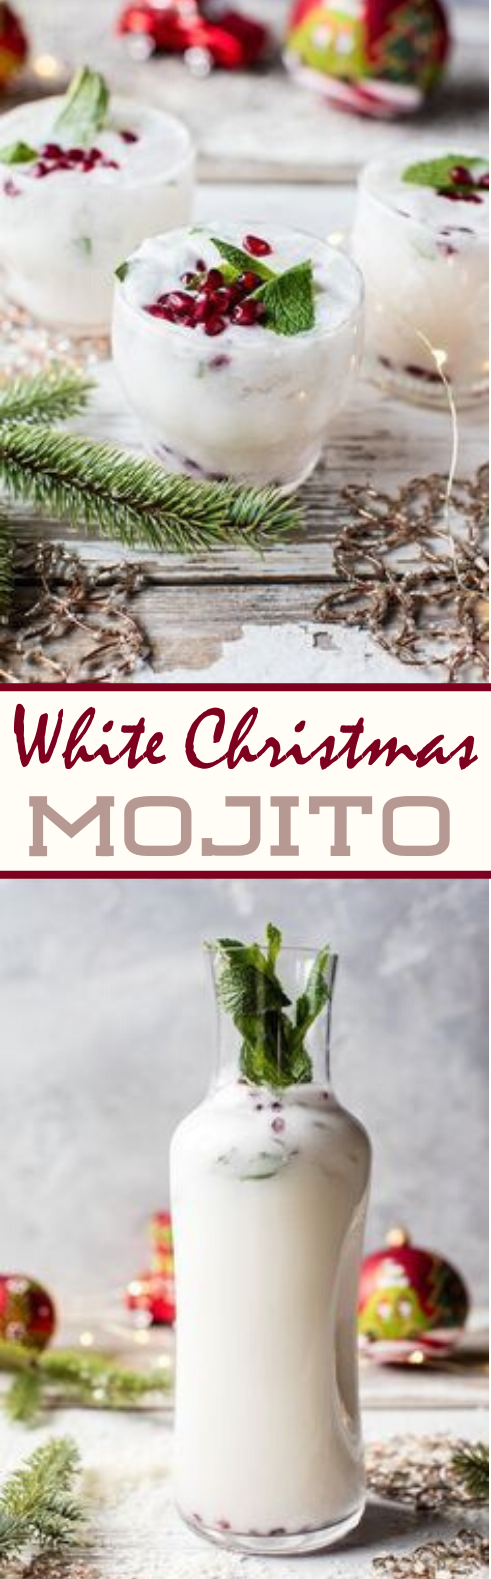 White Christmas Mojito #alcohol #drinks #christmas #mojito #party